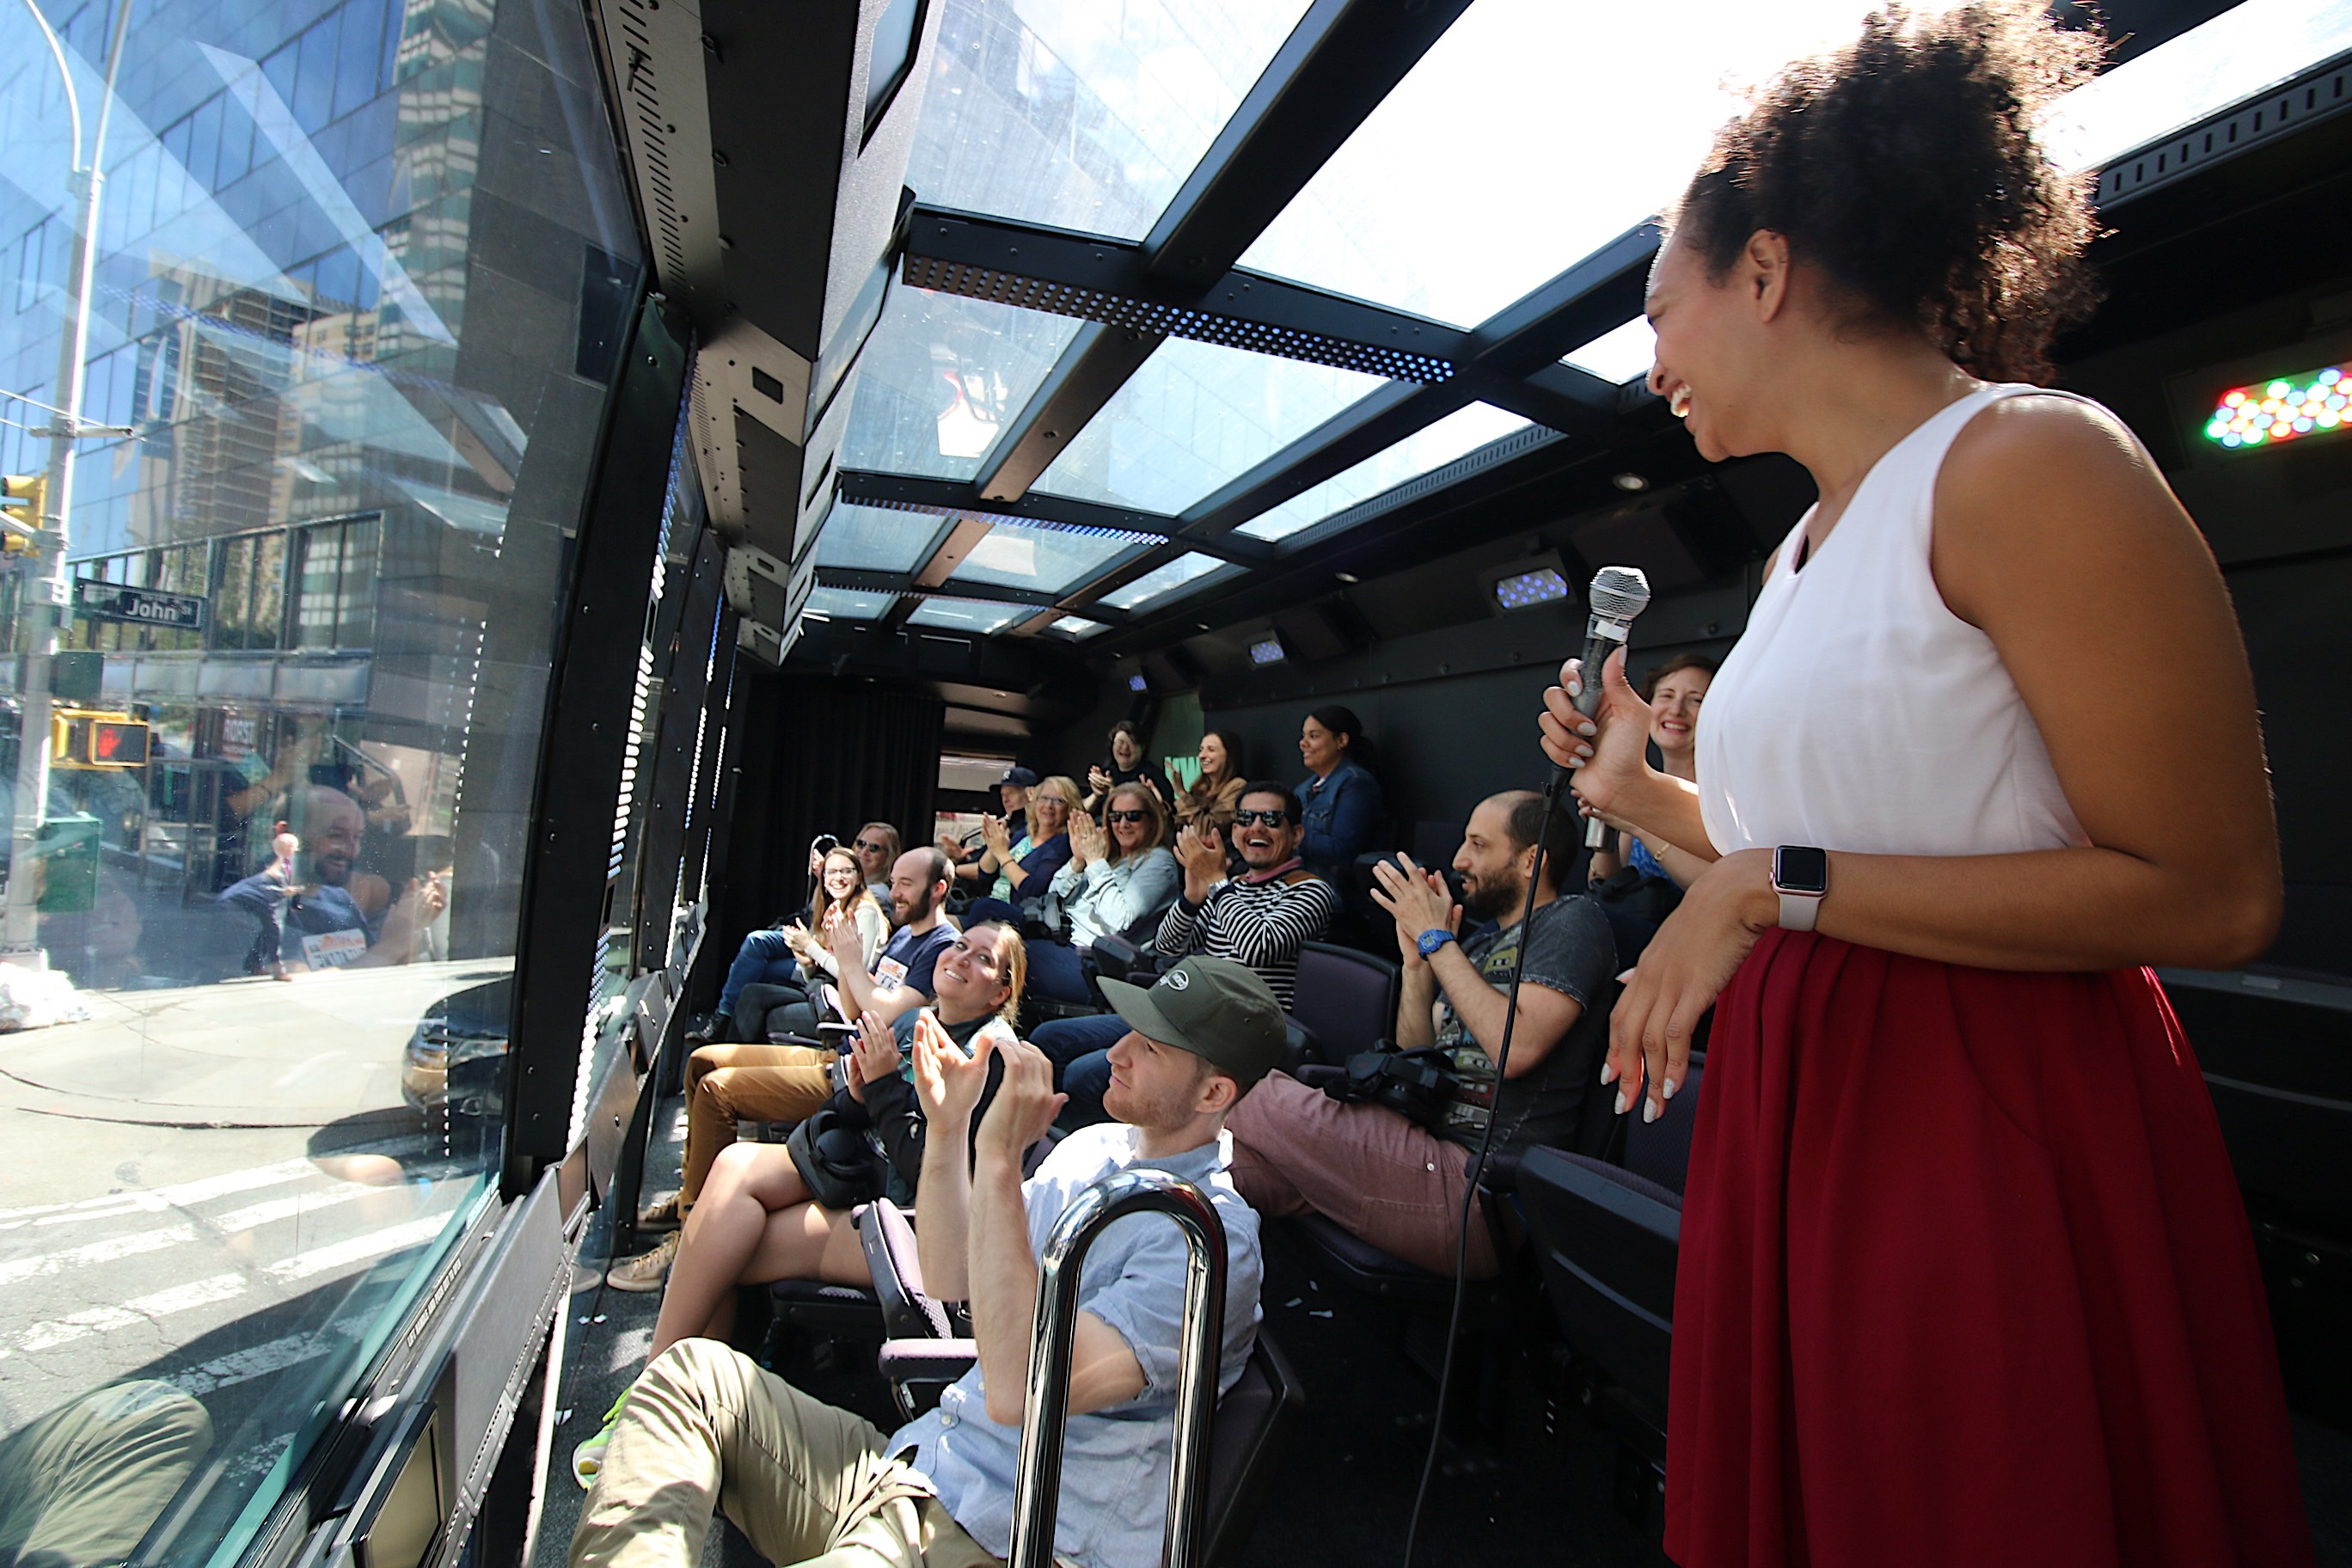 THE DOWNTOWN EXPERIENCE Host & Guests on the THE RIDE Bus